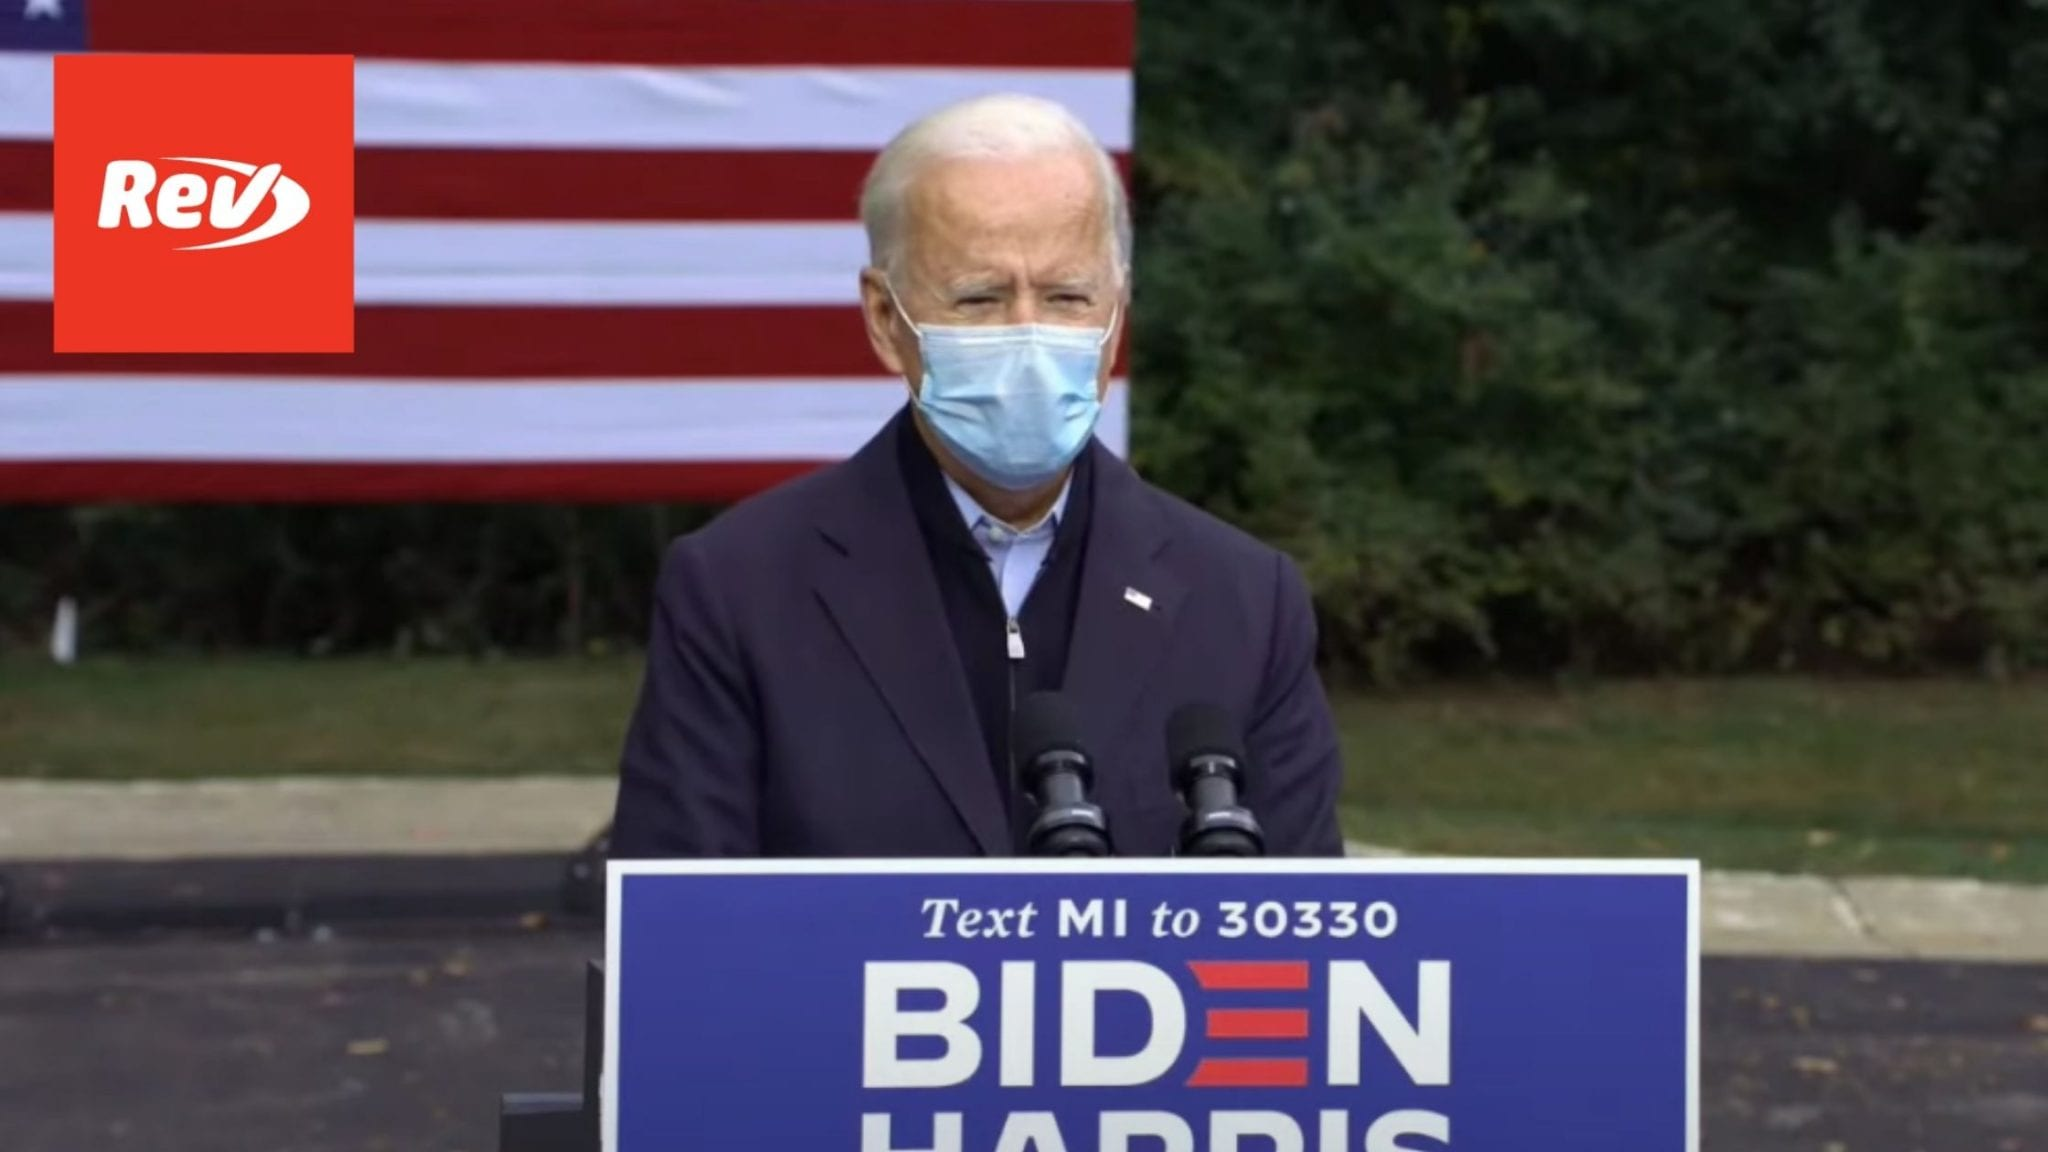 Joe Biden Grand Rapids, Michigan Speech Transcript October 2